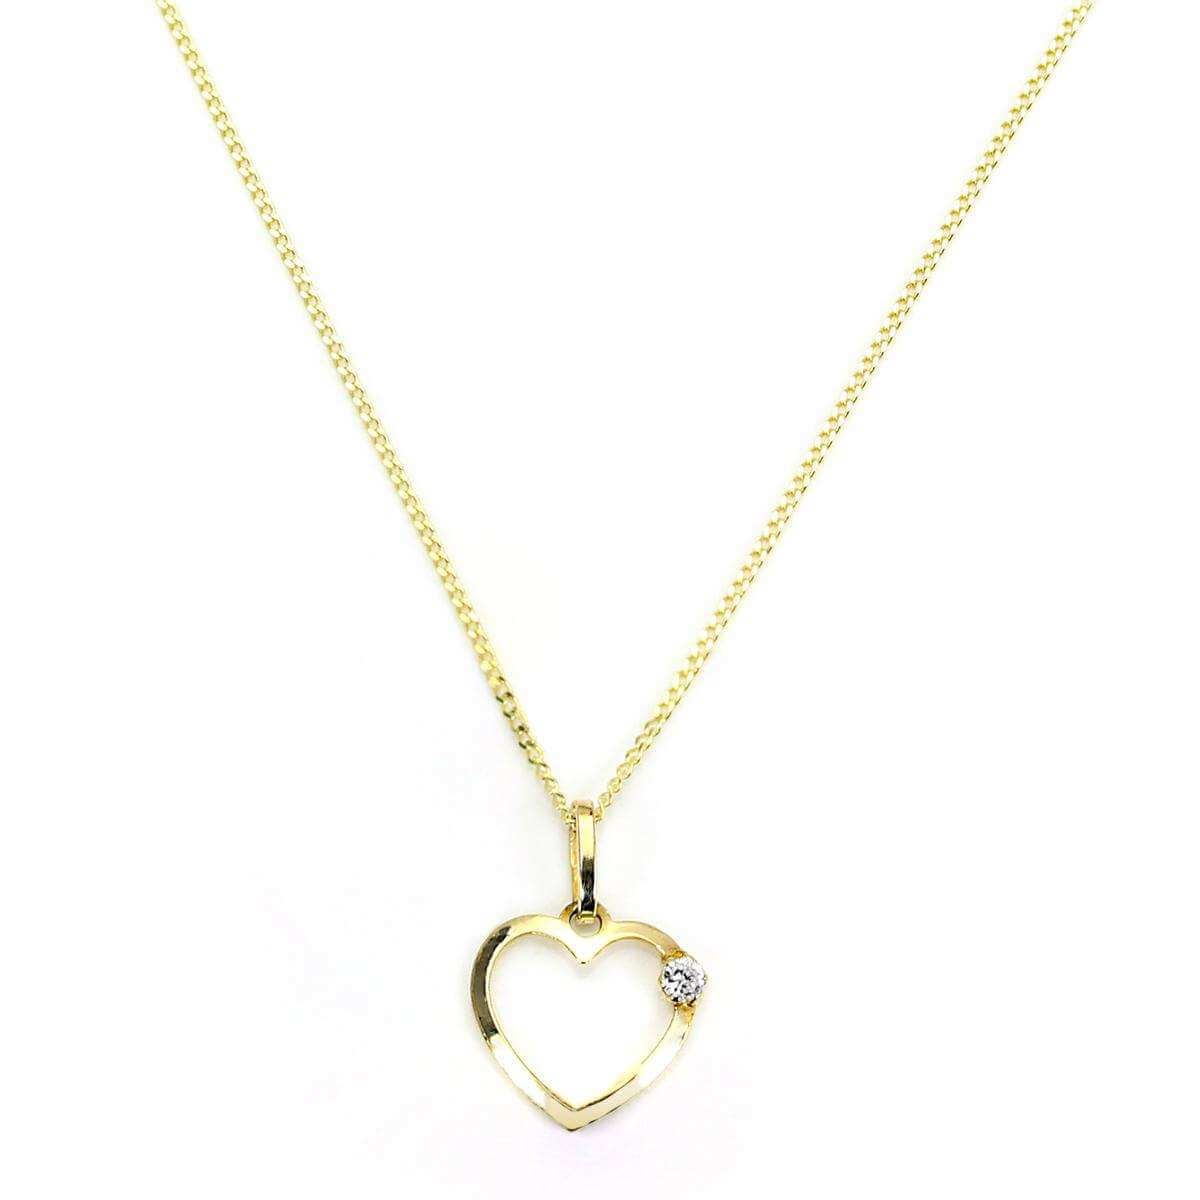 9ct Gold Light Open Heart with CZ Crystal Pendant